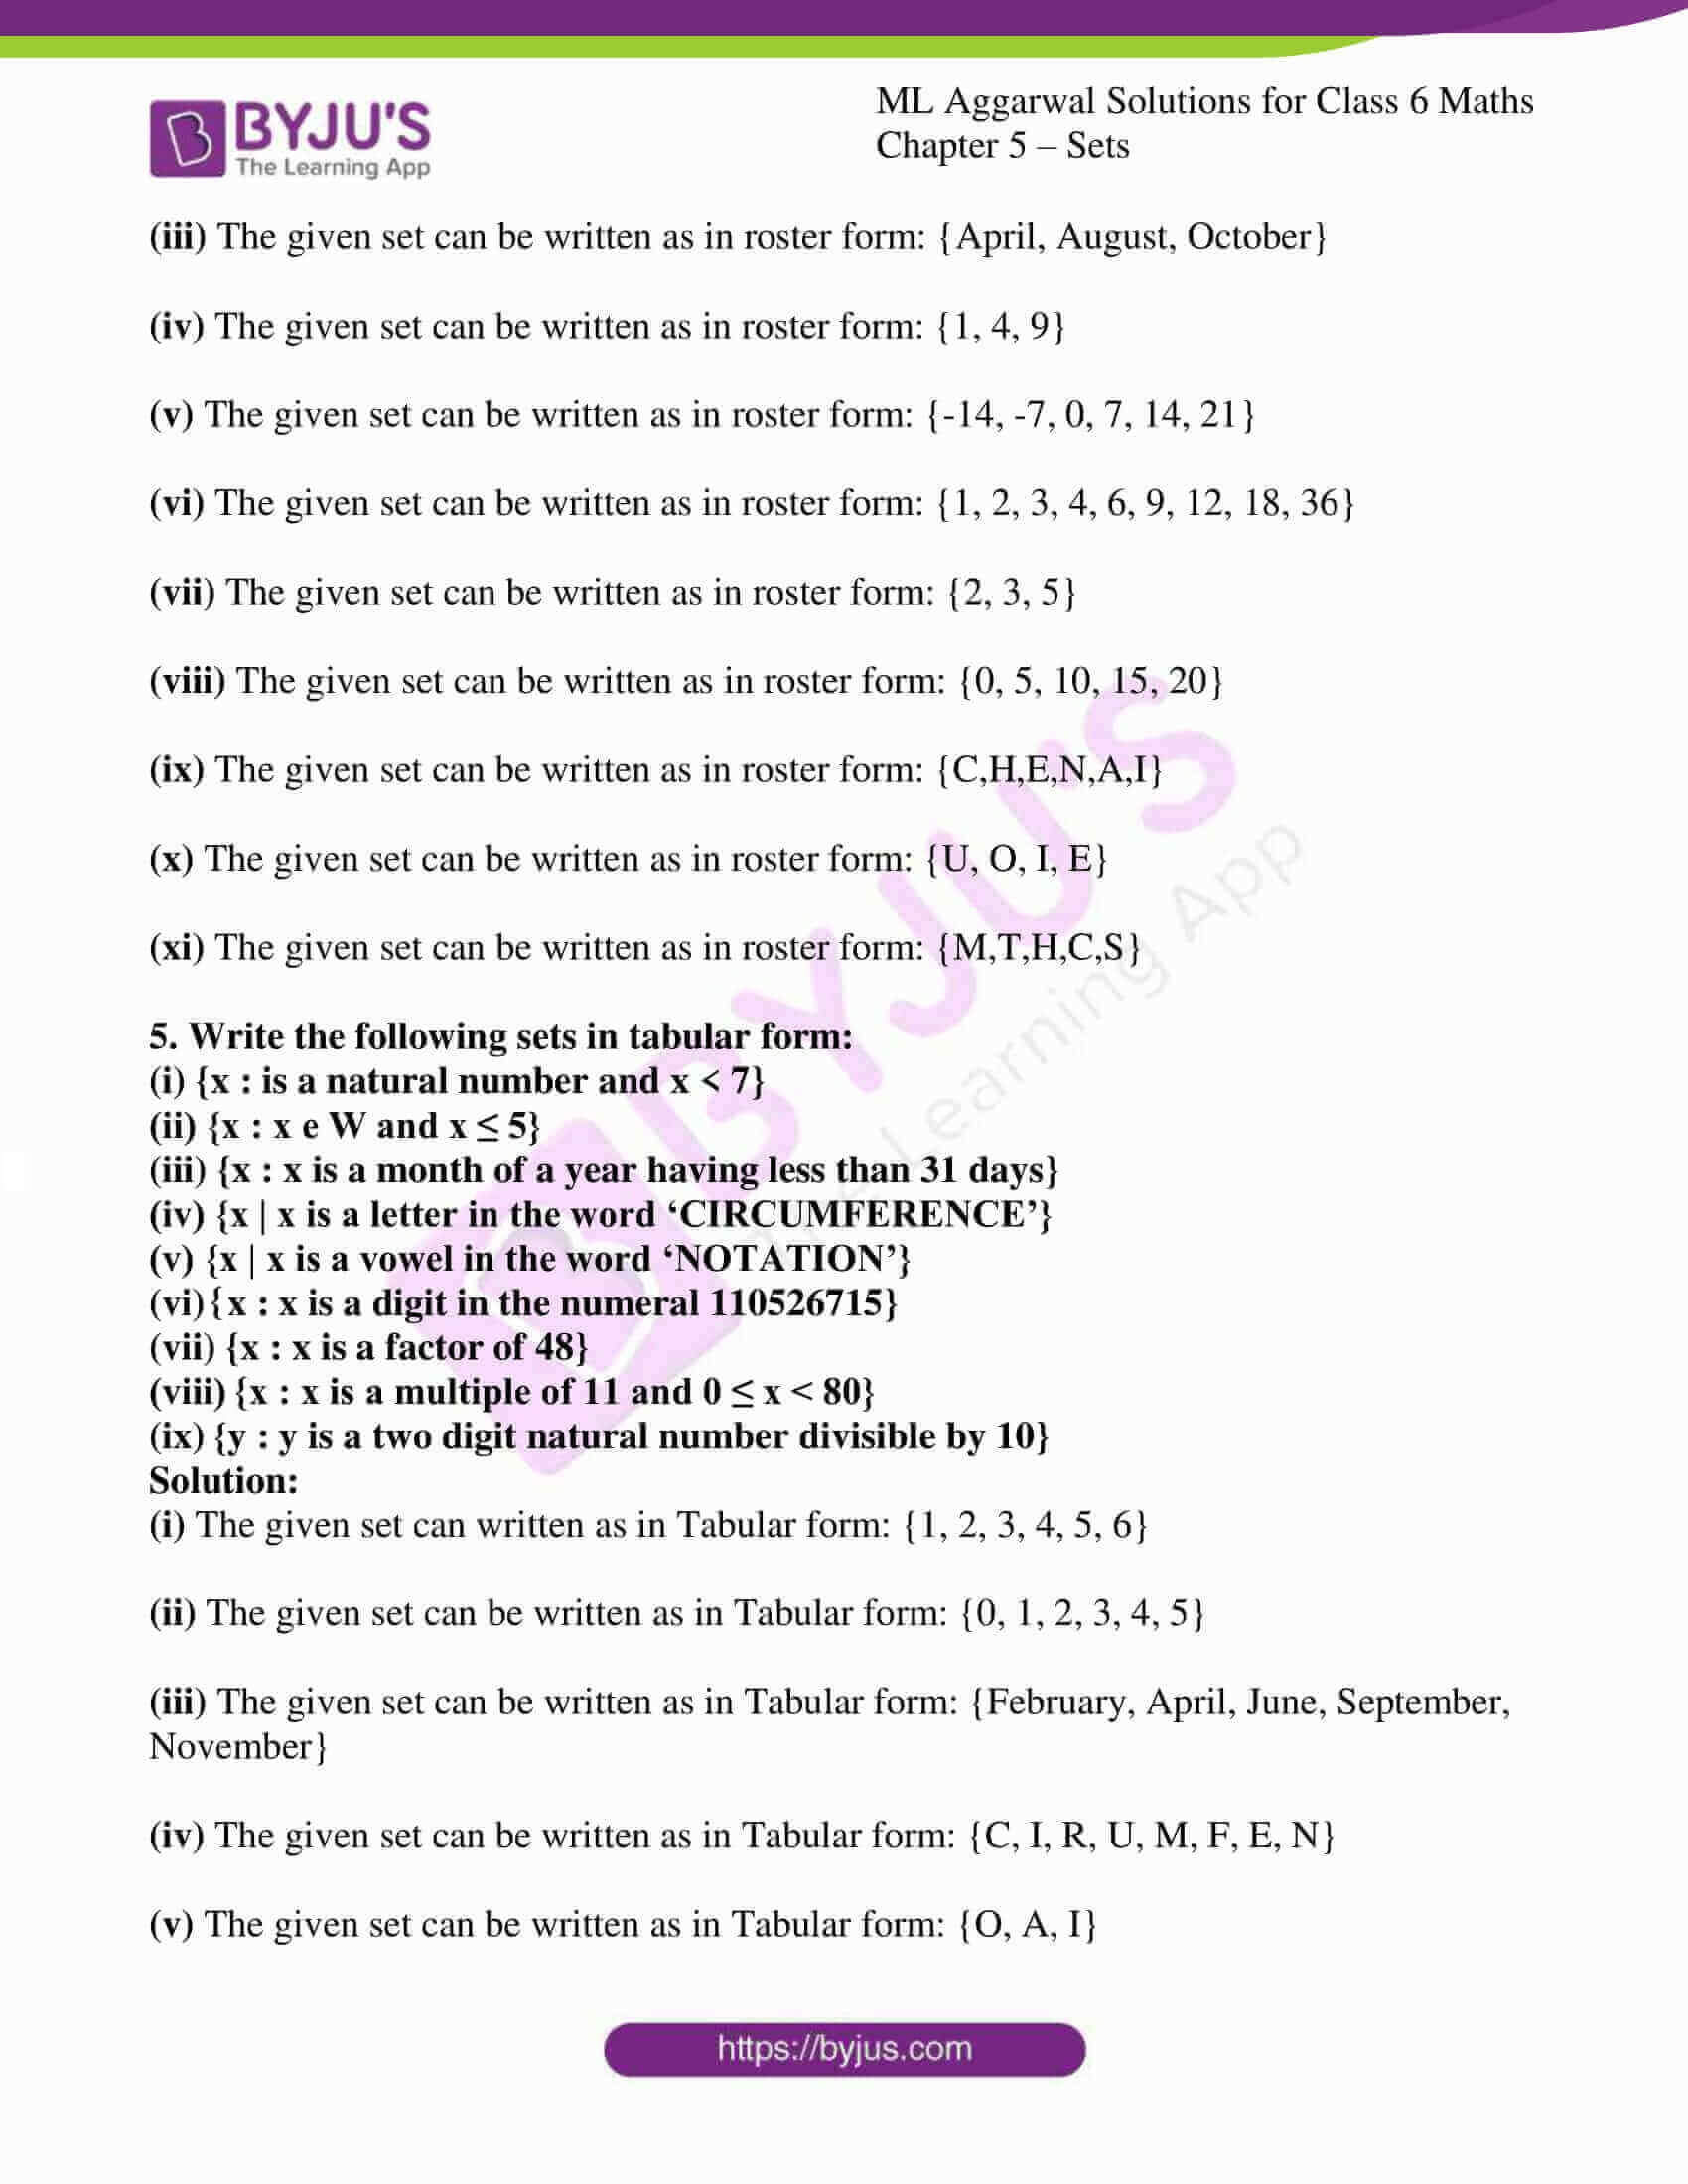 ml aggarwal solutions for class 6 maths chapter 5 4